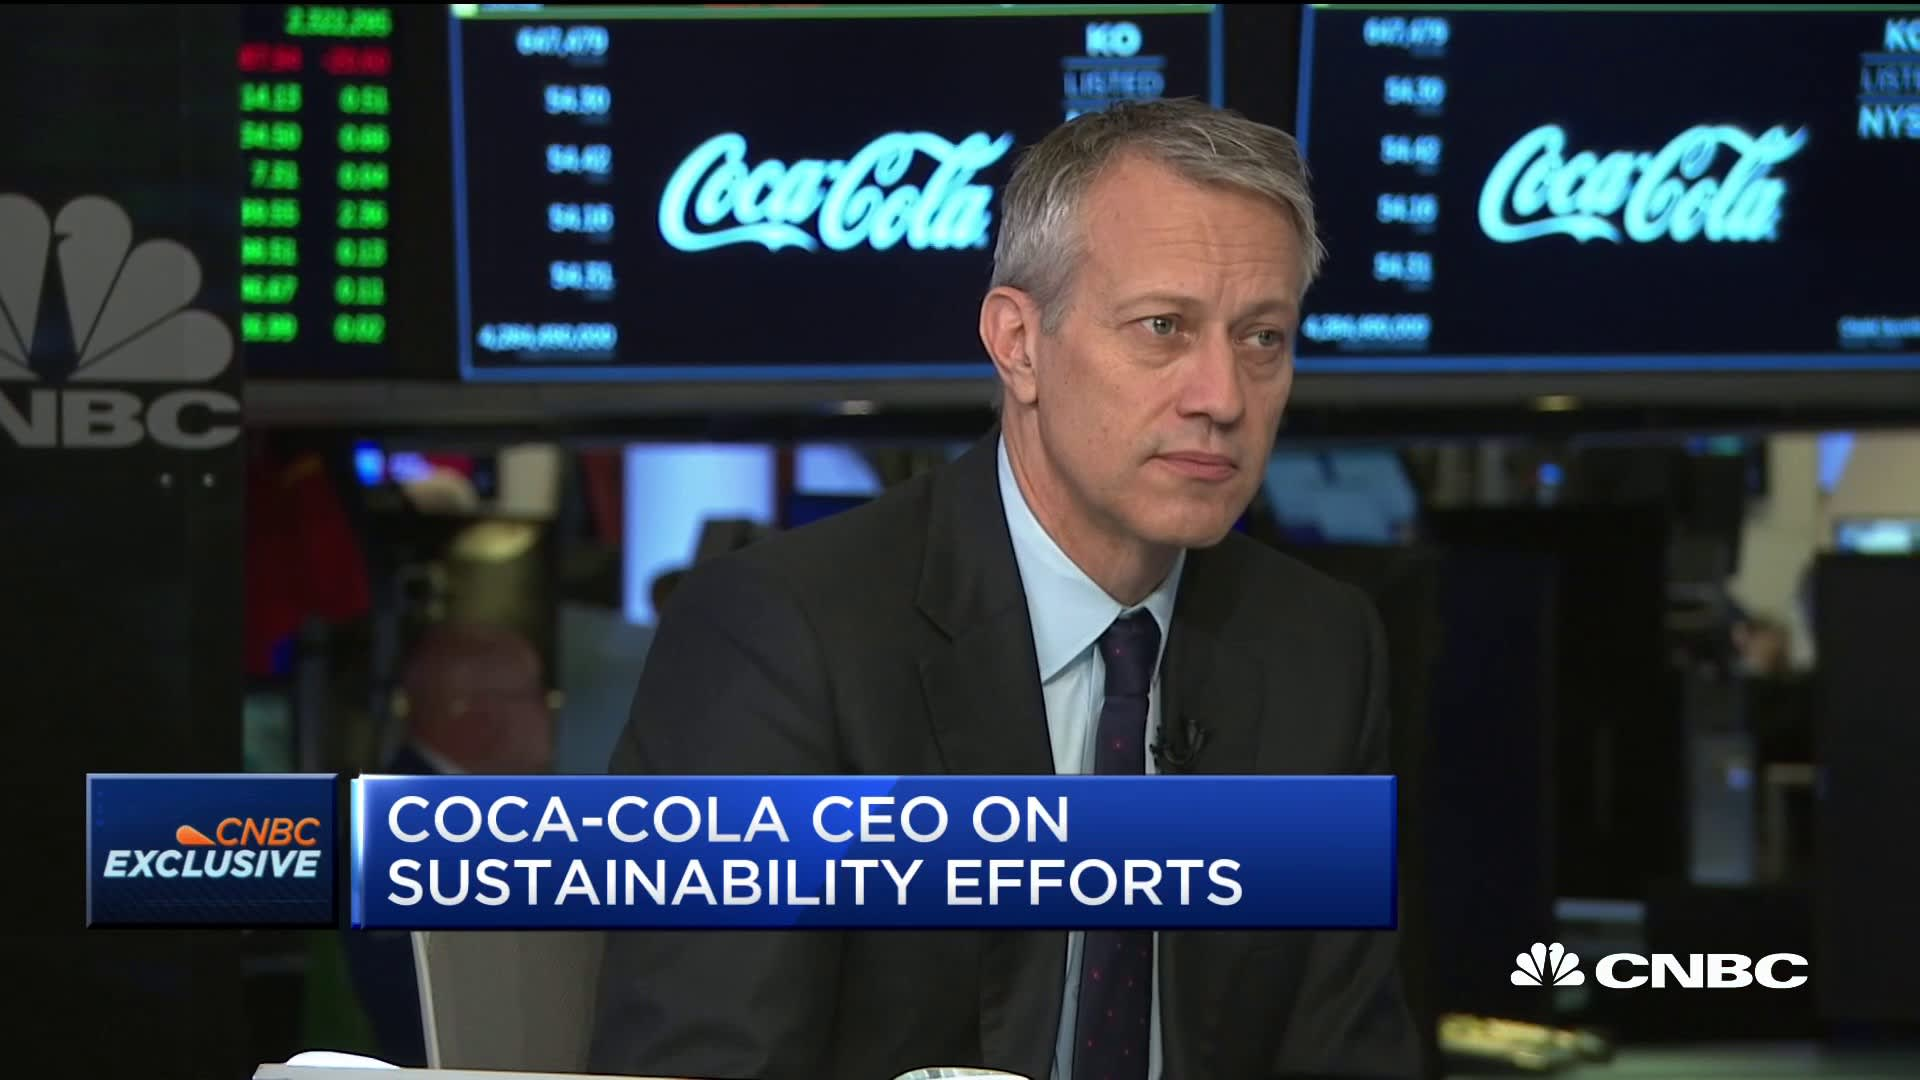 Coca-Cola CEO James Quincey explains the company's effort to reduce plastic